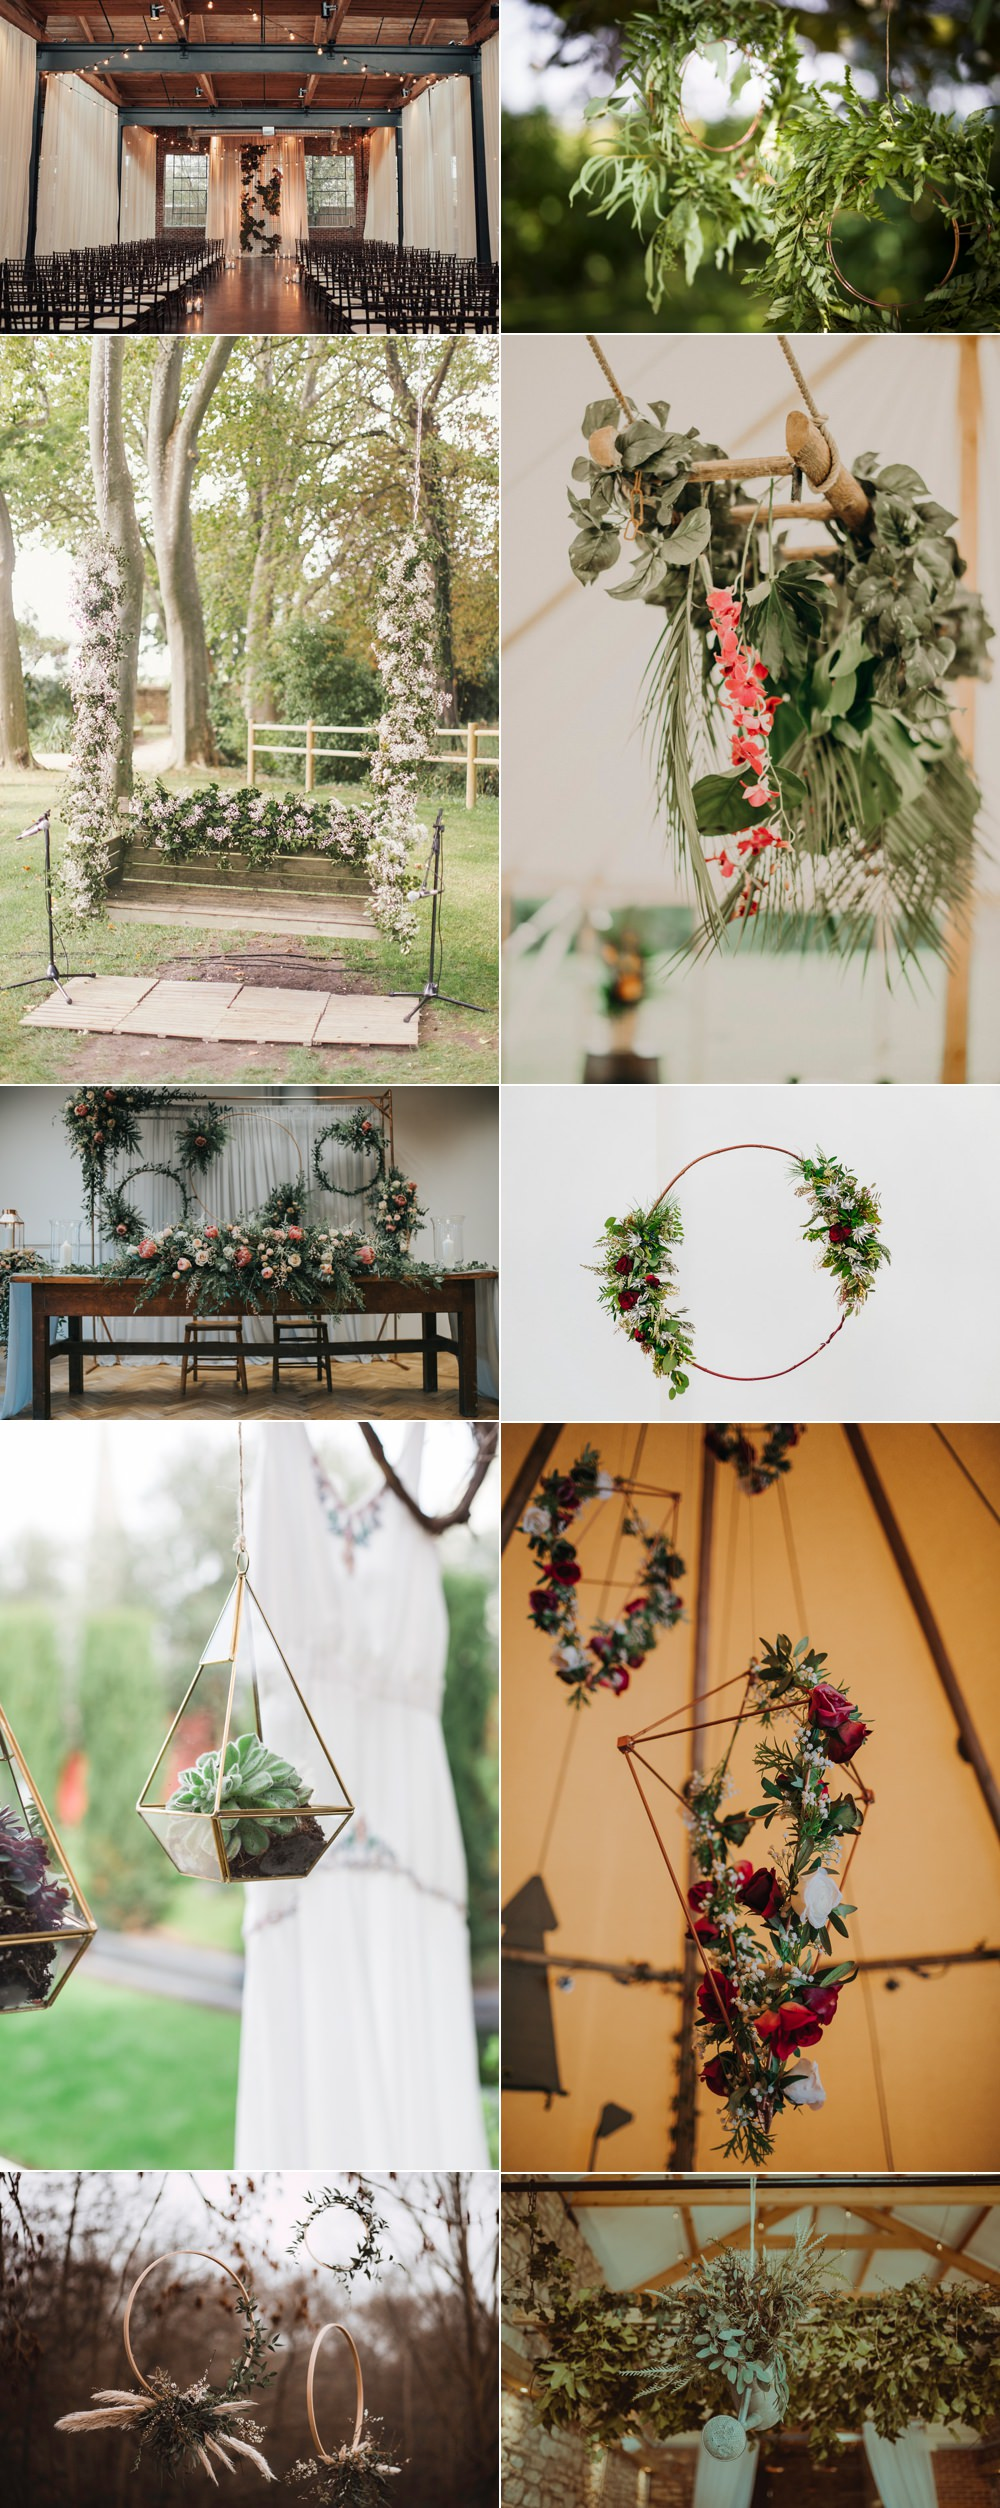 Suspended Hanging Floral Flower Ideas Wedding Inspiration